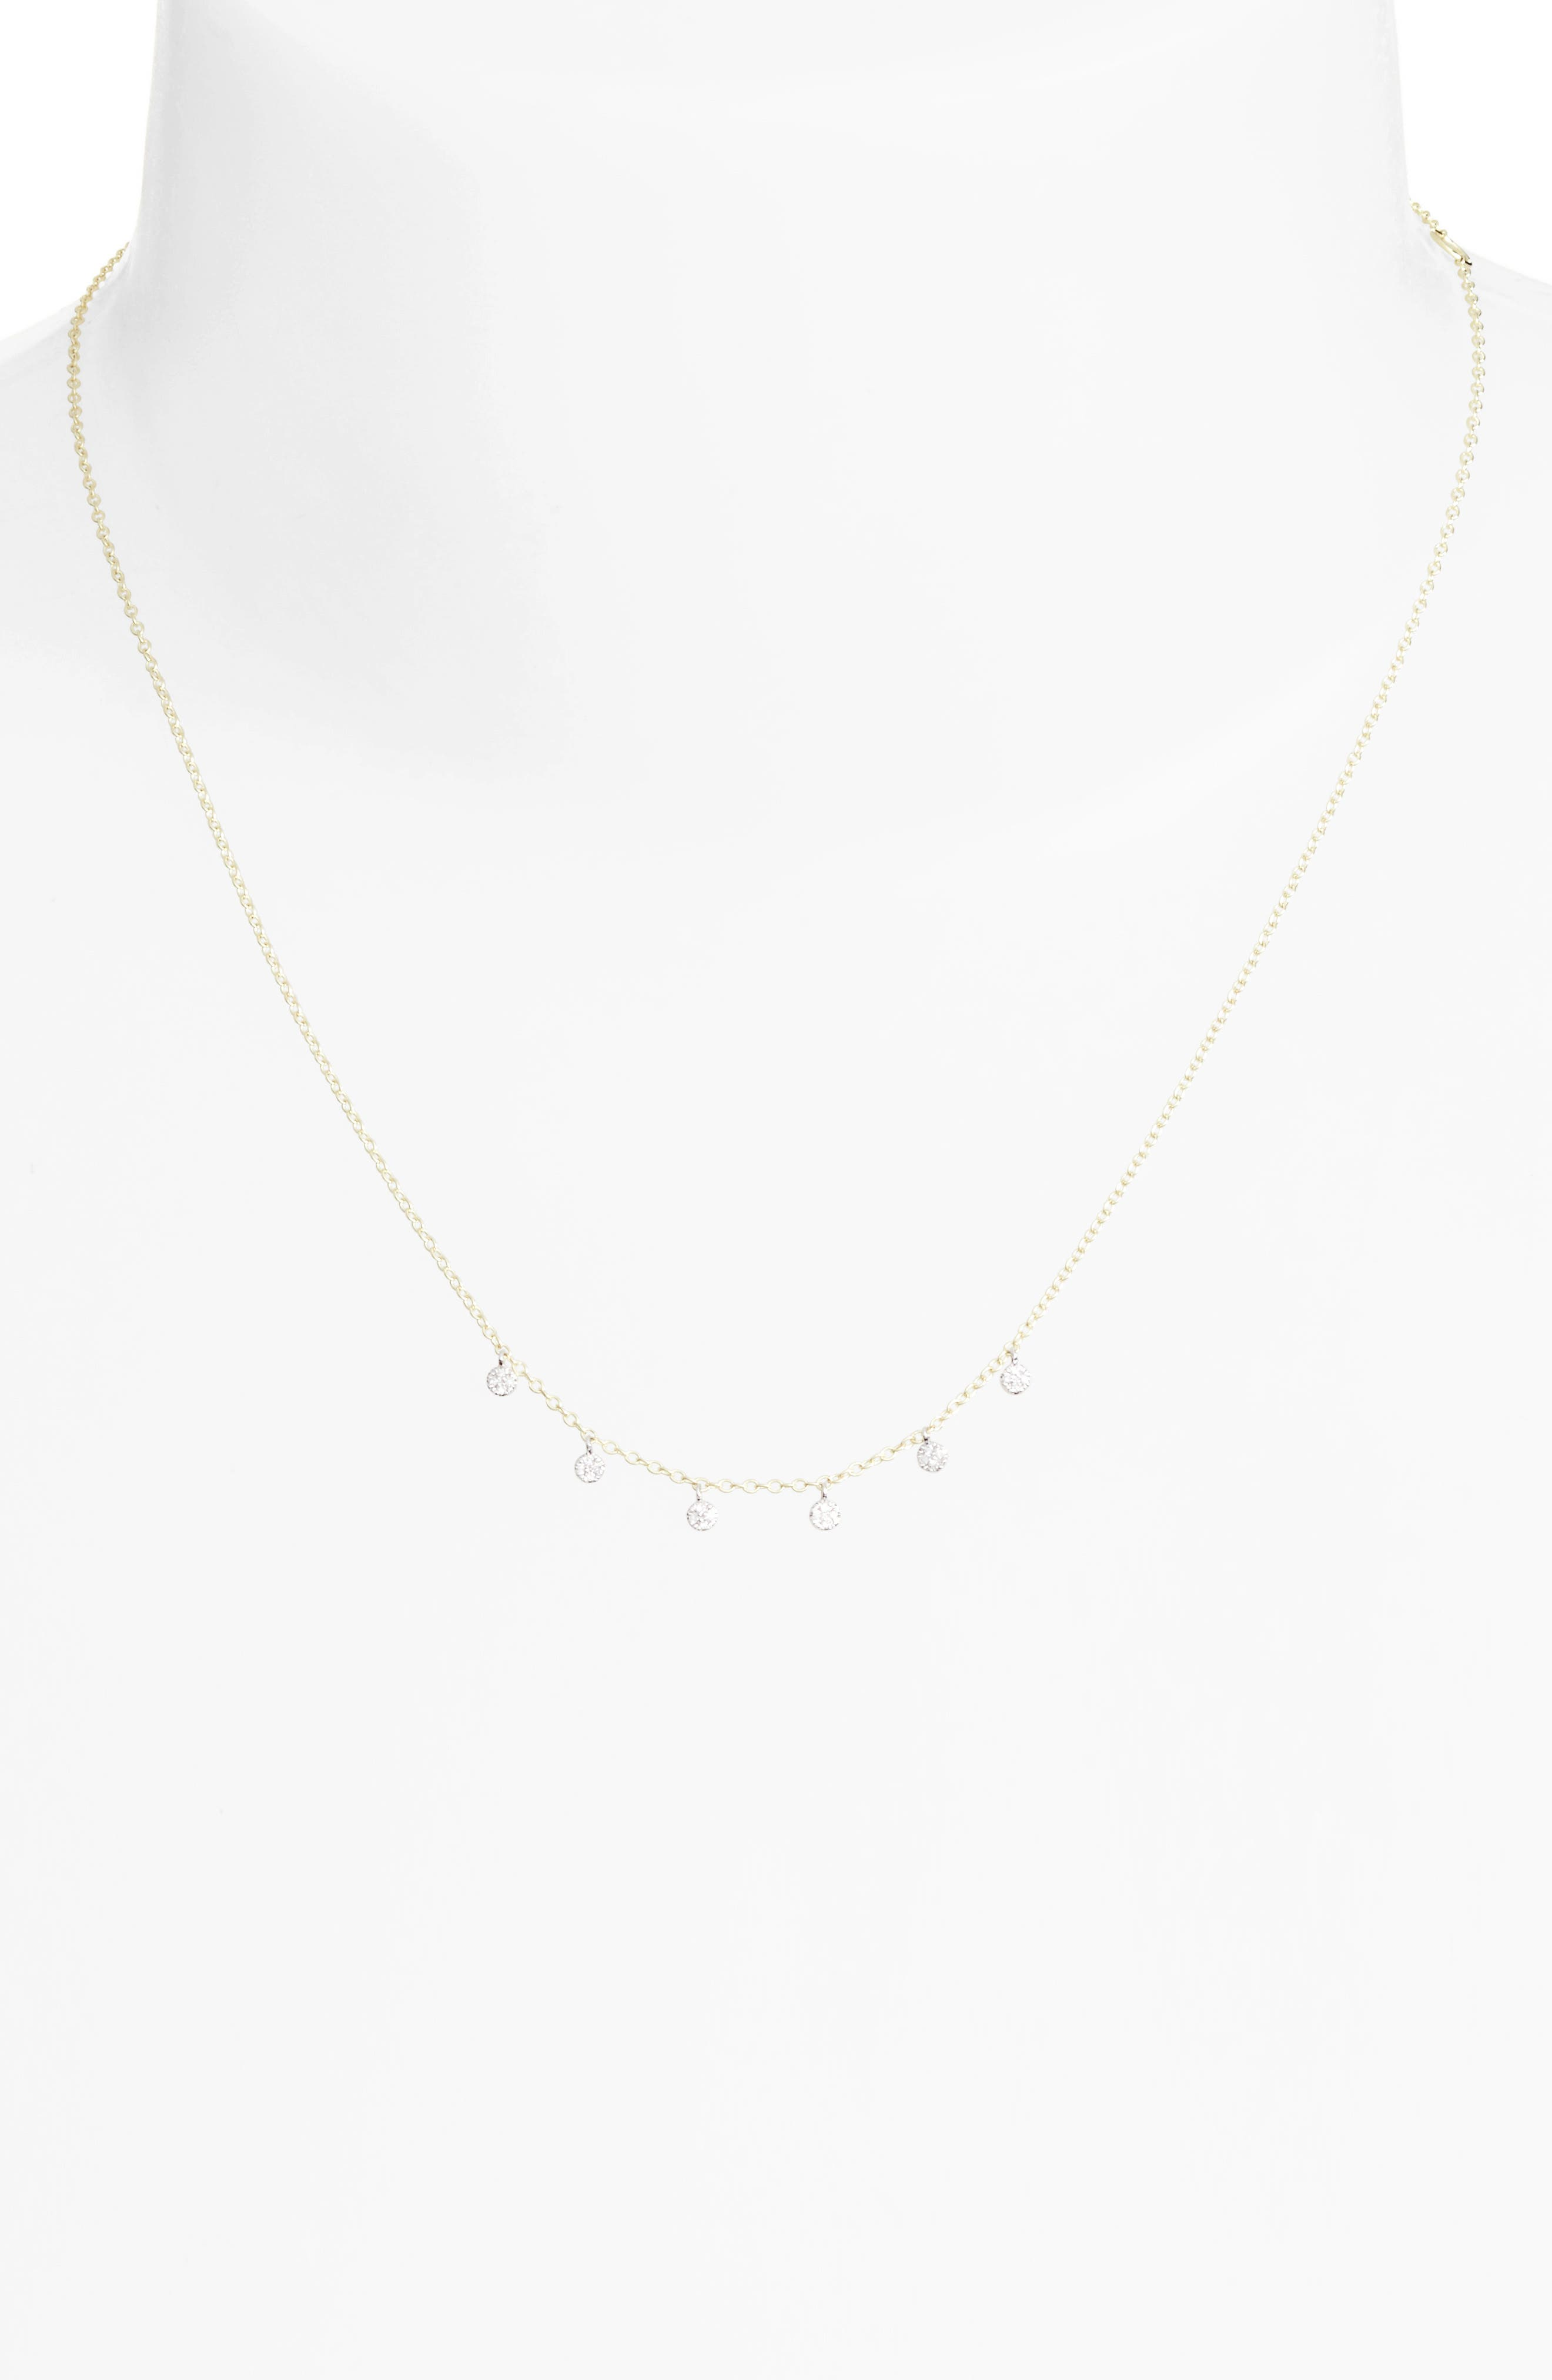 Diamond Disc Collar Necklace,                             Alternate thumbnail 2, color,                             YELLOW GOLD